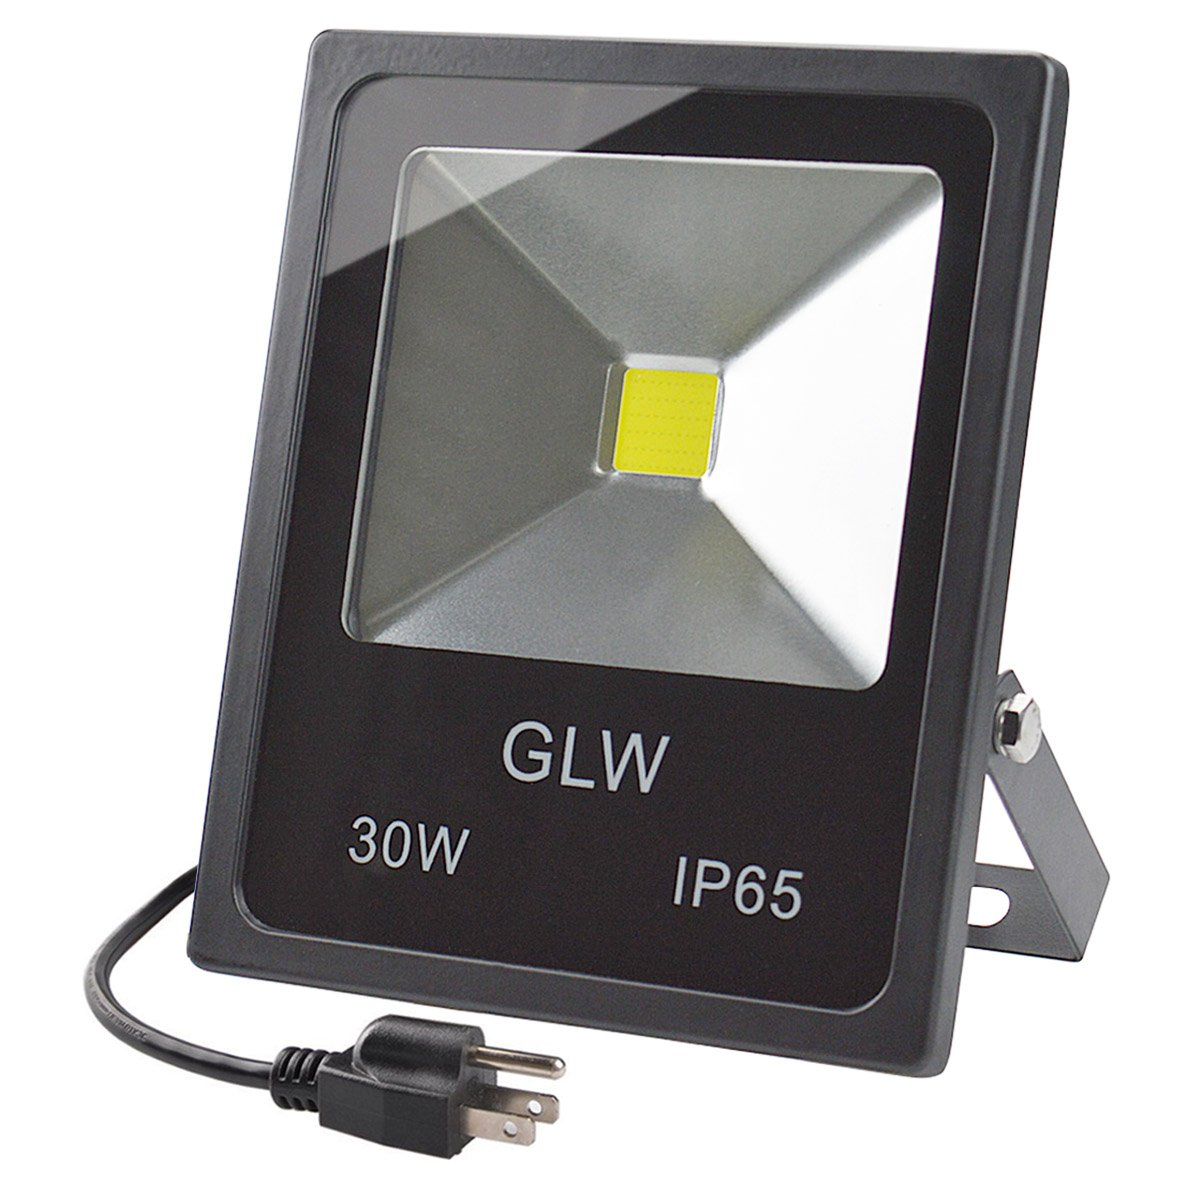 GLW-30W Outdoor LED Flood Light, LED Floodlights